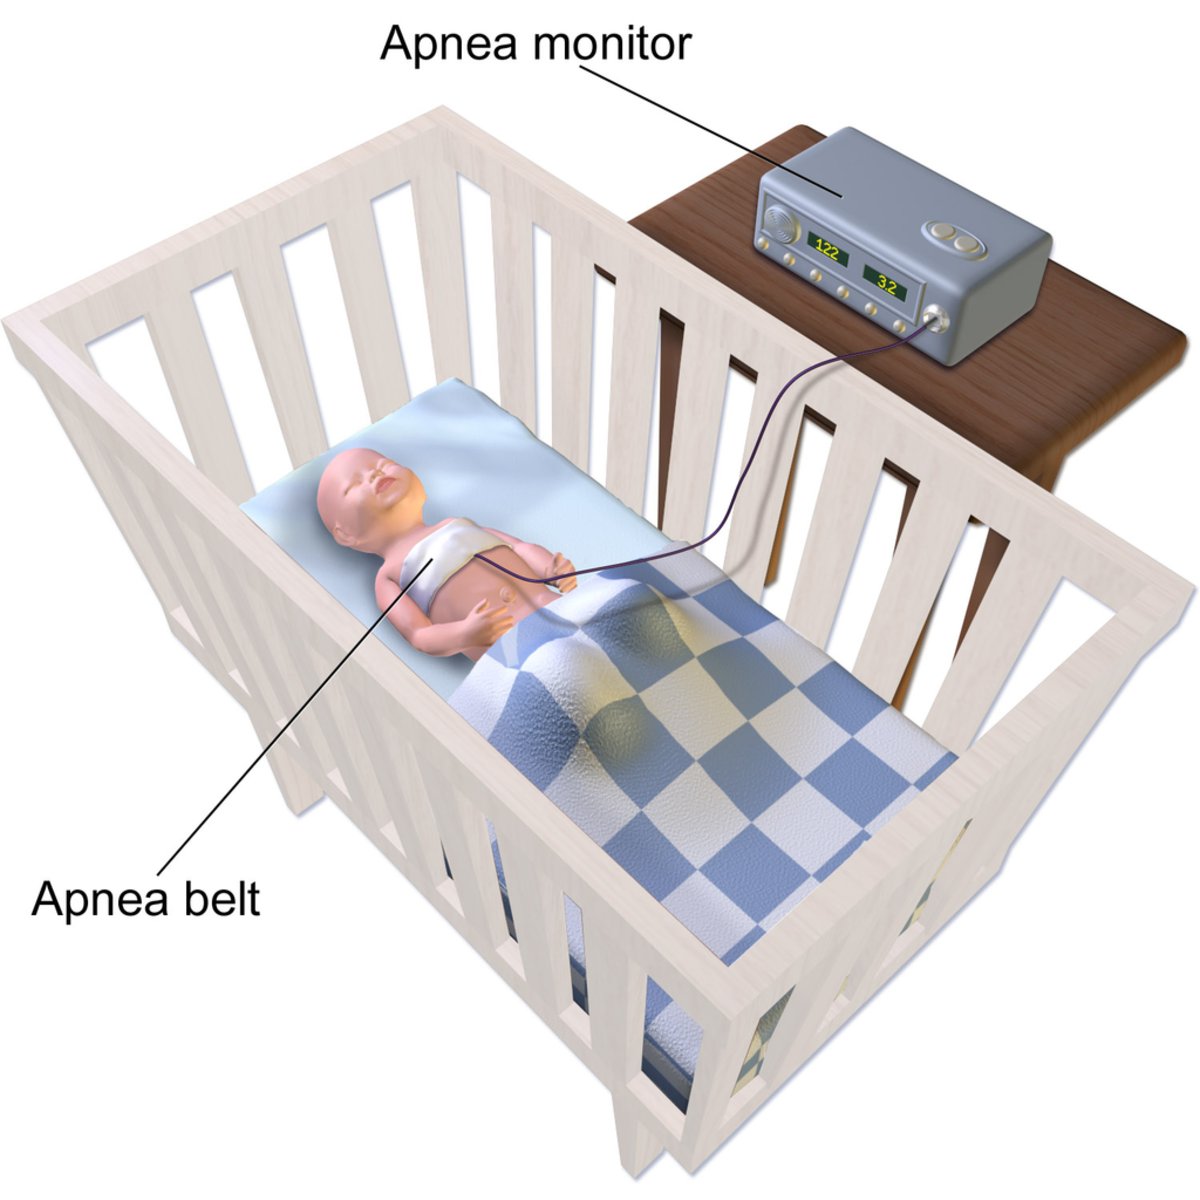 An illustration depicting a sleep apnea monitor